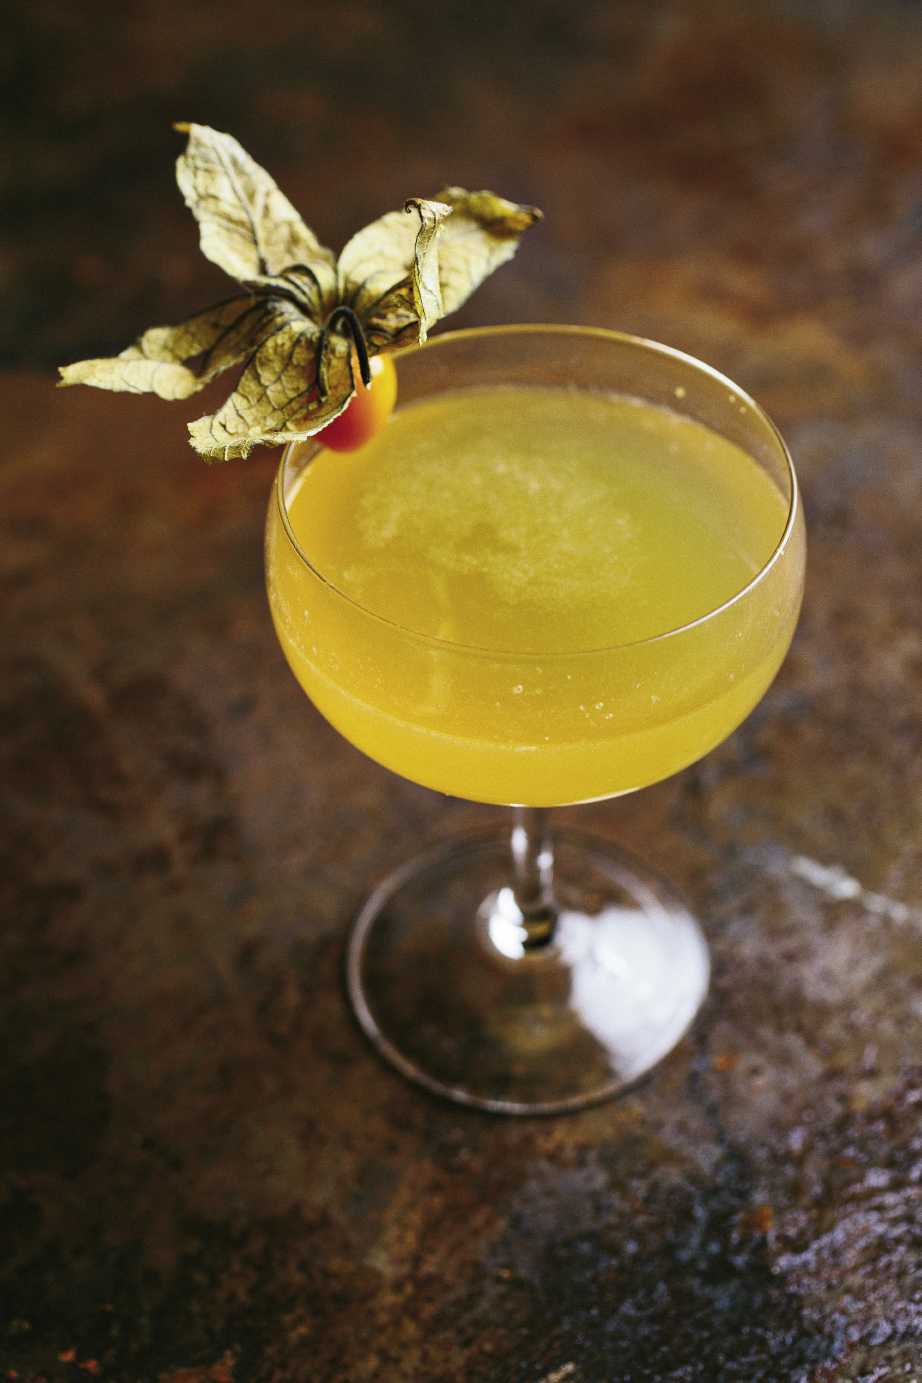 """The Gin Joint is renowned  for its craft cocktails, and bartender Jamie Bolt mixed up some special concoctions for the appreciative F&B crowd. This gorgeous cocktail, dubbed """"The Death Grip,"""" is slightly tart and sweet with St. George Terroir Gin and apricot eau-de-vie. Get the recipe at charlestonmag.com/LeadingLadies."""